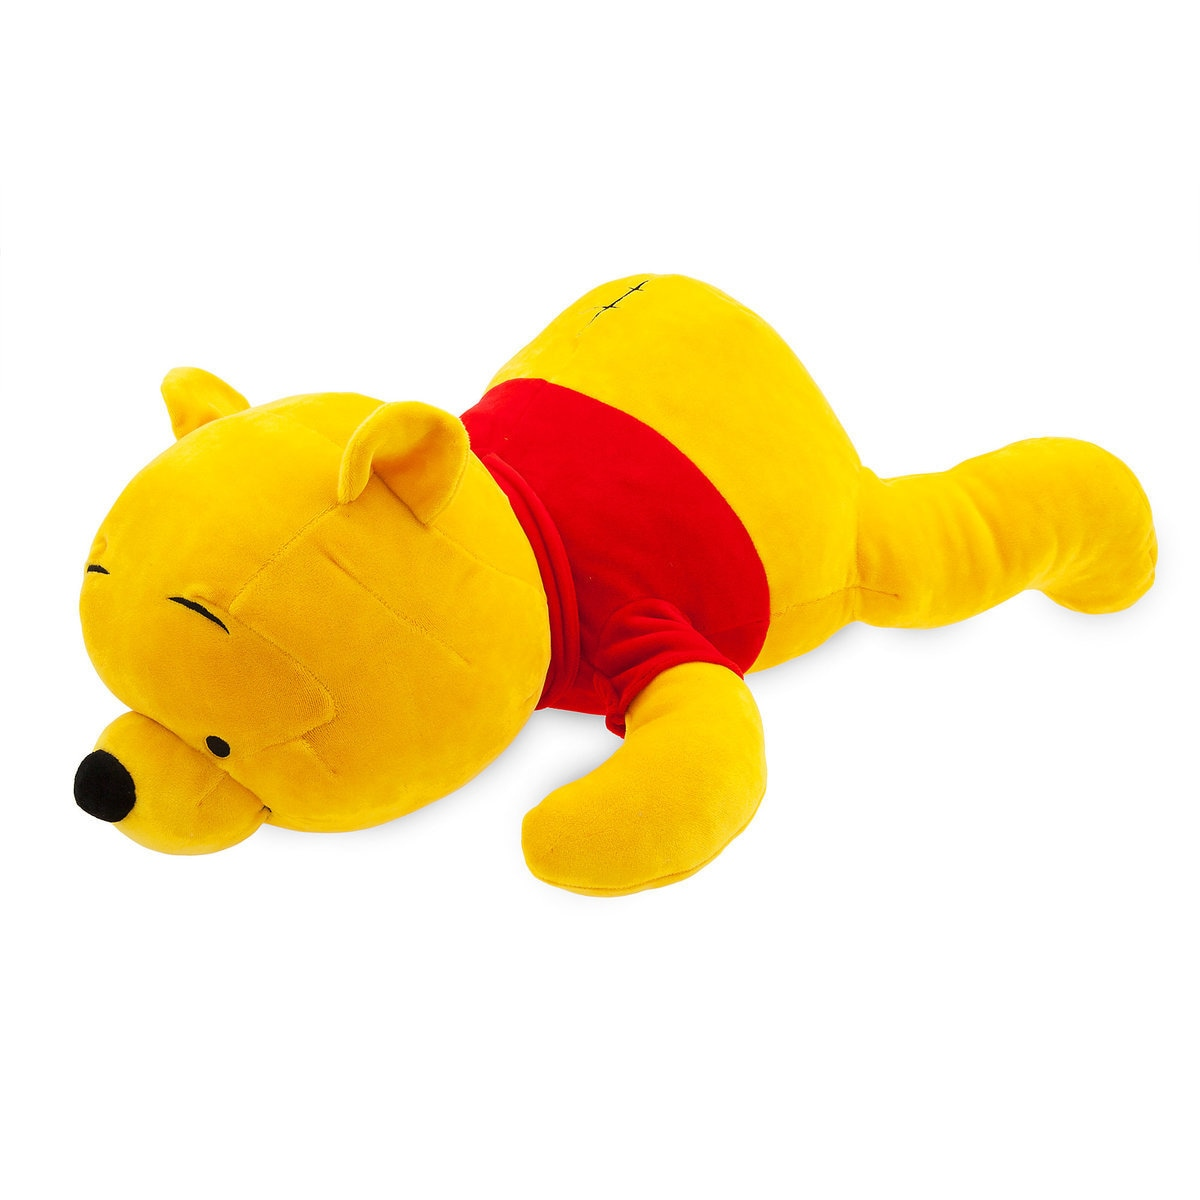 244b420e3639 Product Image of Winnie the Pooh Cuddleez Plush - Large   1